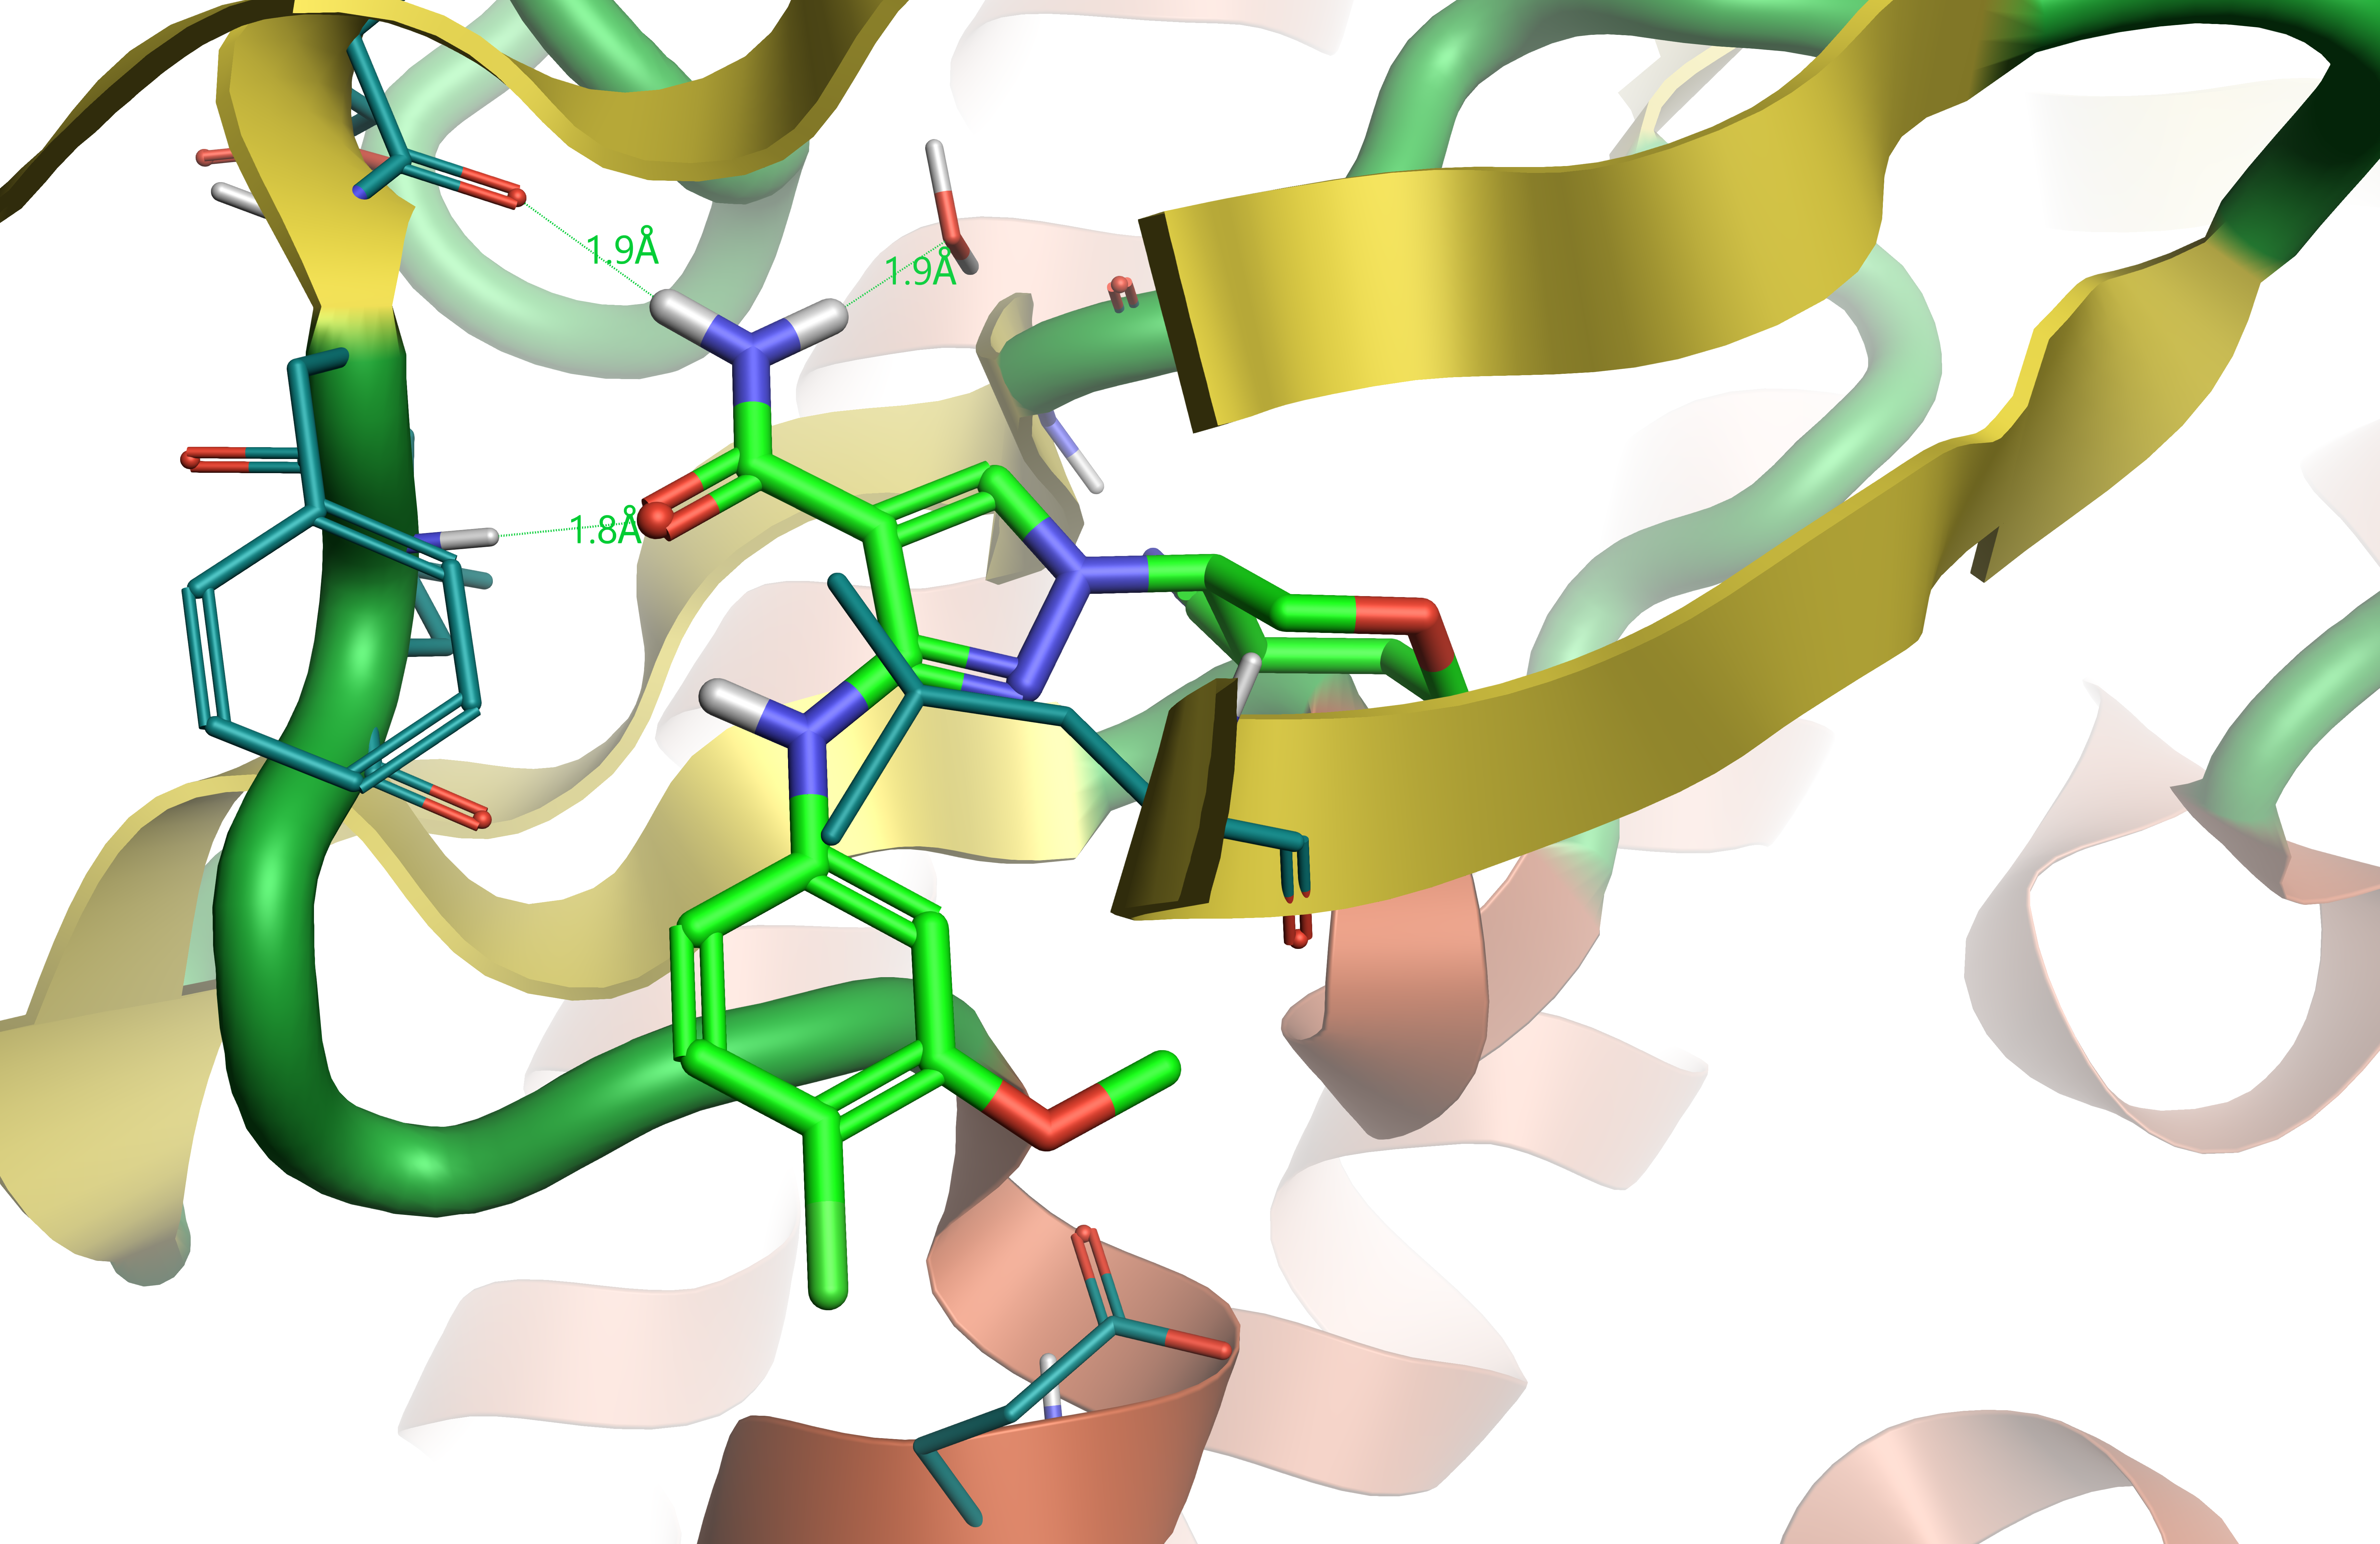 Crystallographic ligand compound 28 bound in JAK1 active site